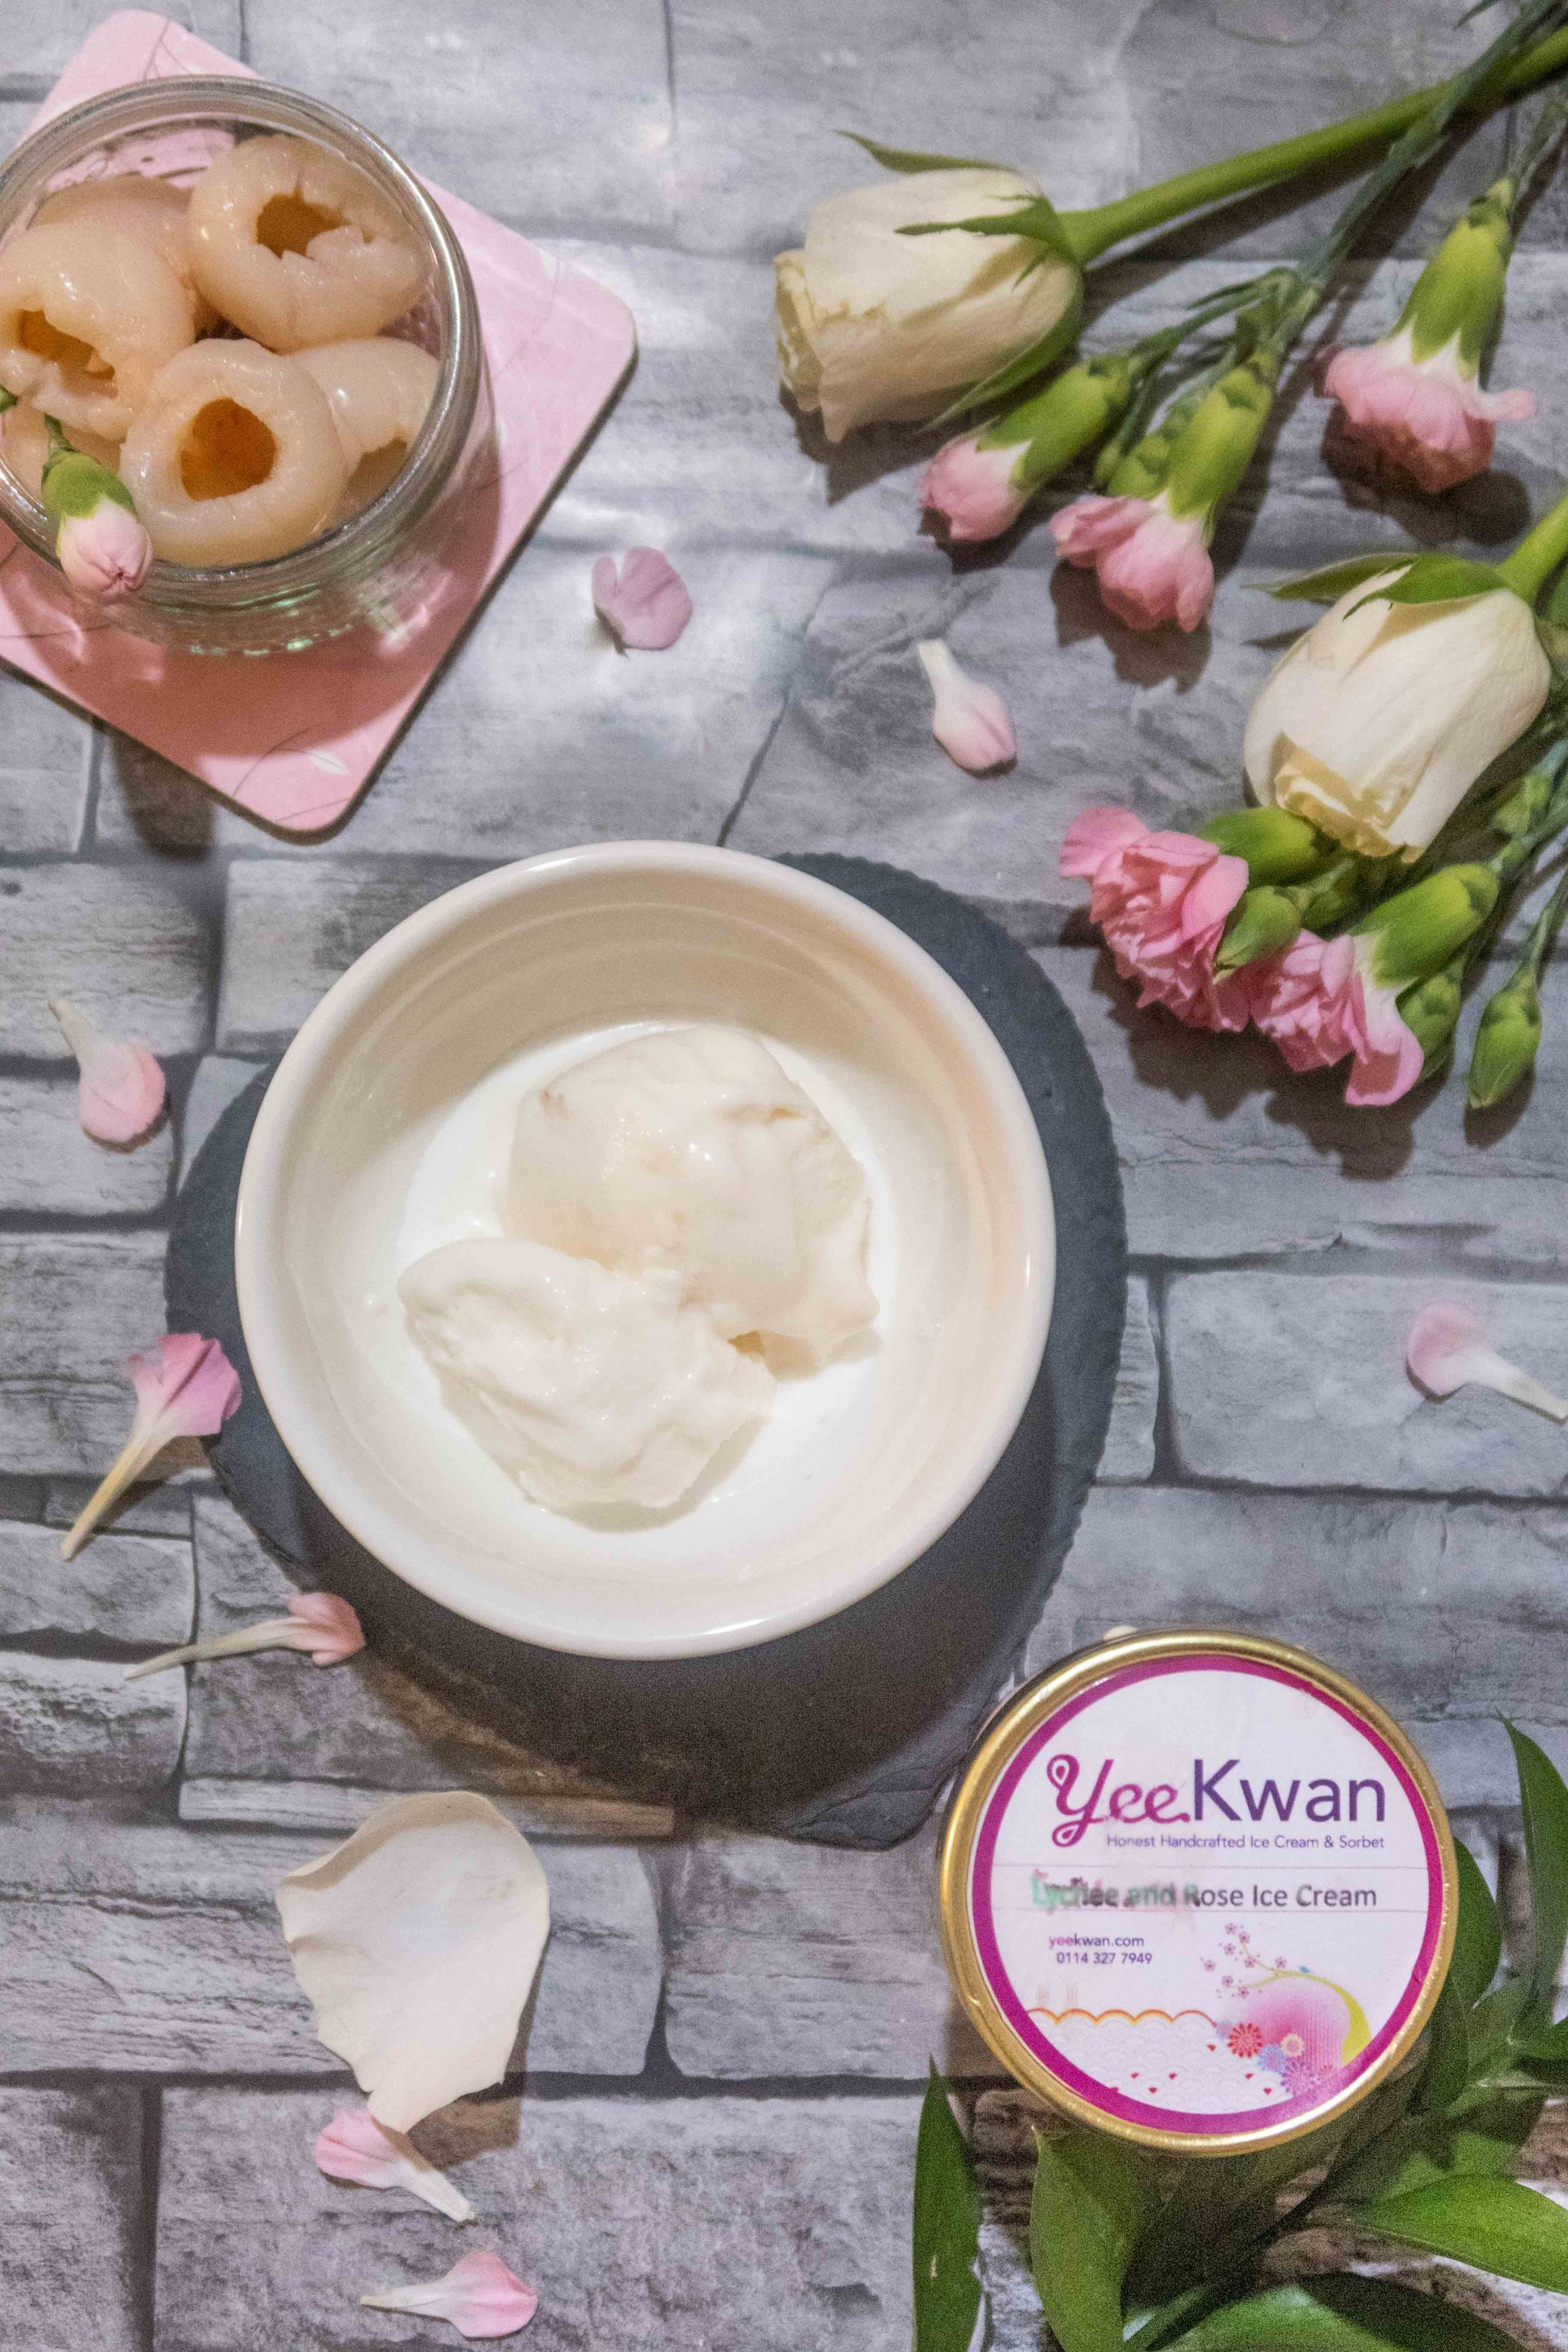 Yee Kwan's Lychee and Rose ice cream, in the tub and in a bowl, set against a background with roses and lychees in a ramekin